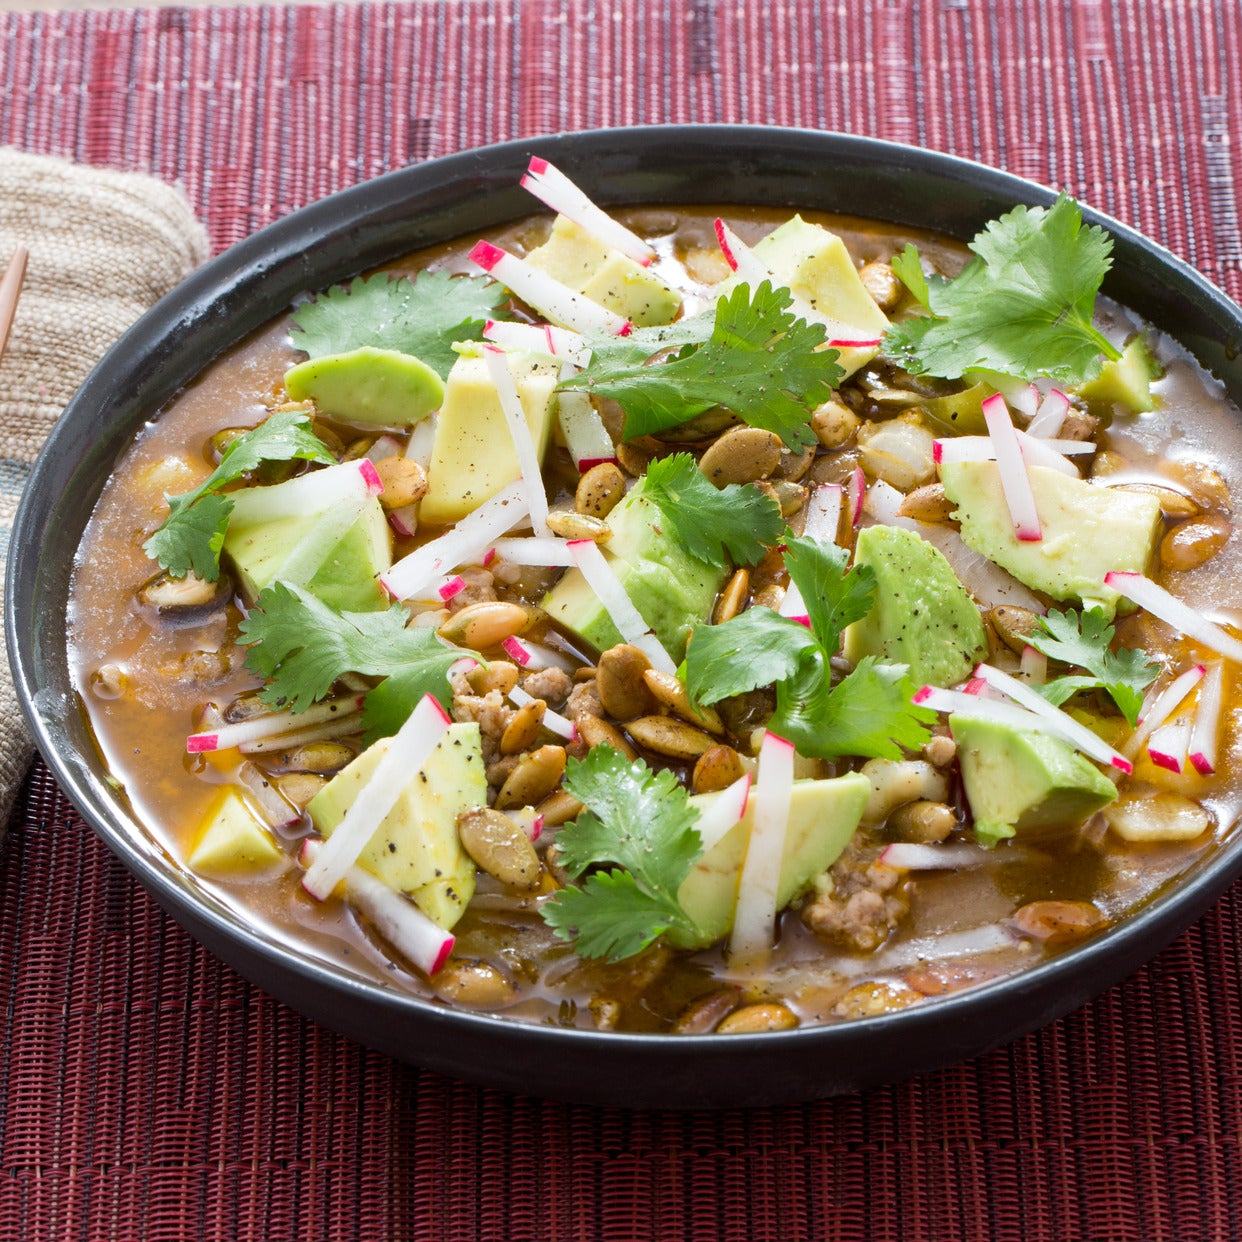 Pork & Tomatillo Pozole with Hominy, Avocado & Radishes